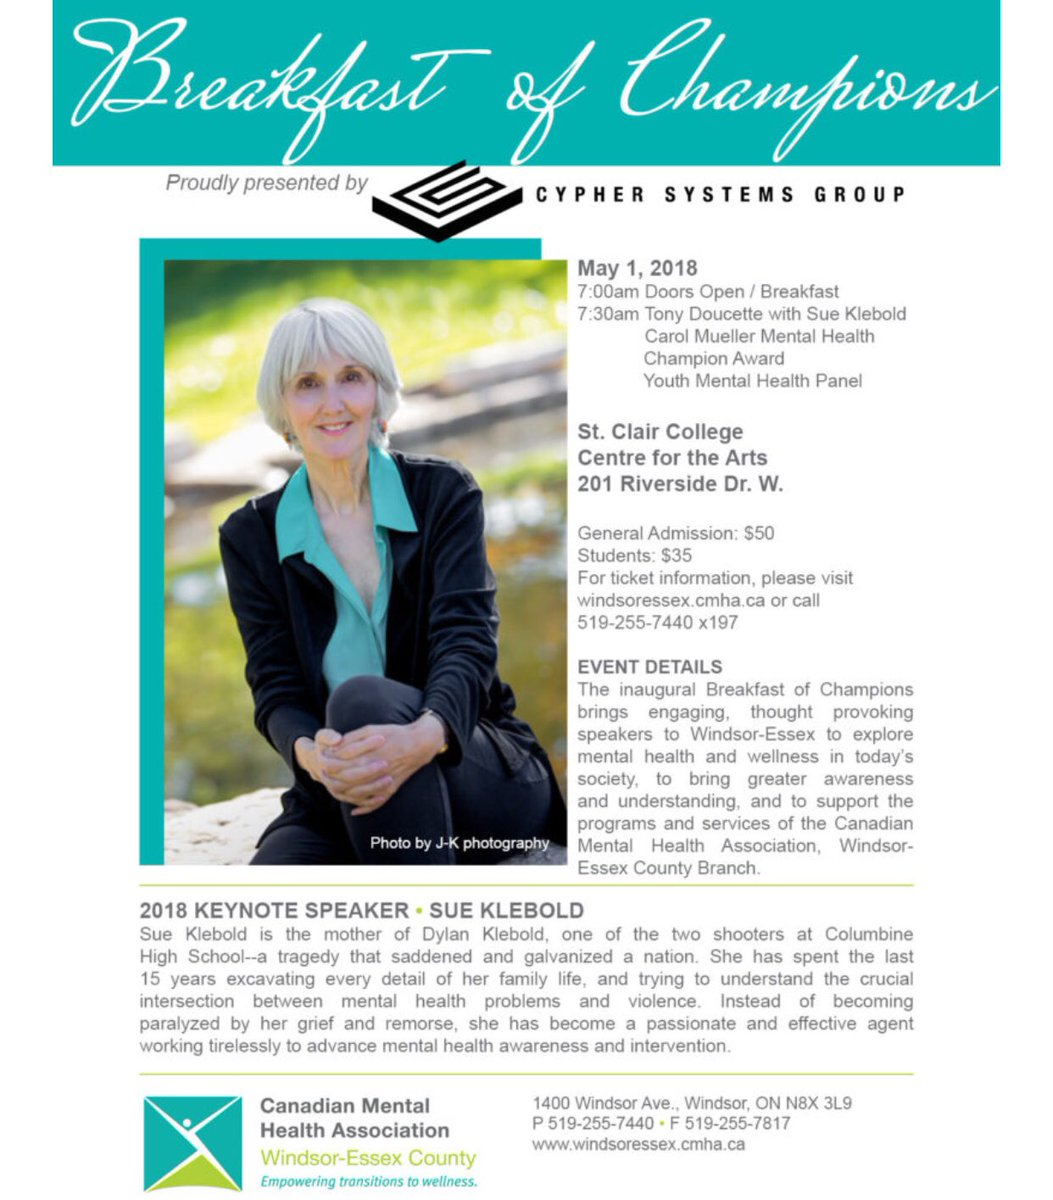 test Twitter Media - Purchase your tickets for the inaugural #breakfastofchampions featuring keynote speaker Sue Klebold. The mother of Dylan Klebold, one of the two shooters at Columbine High School in 1999. she has become a passionate and effective agent working to advance mental health awareness. https://t.co/Qwls6kjaIV